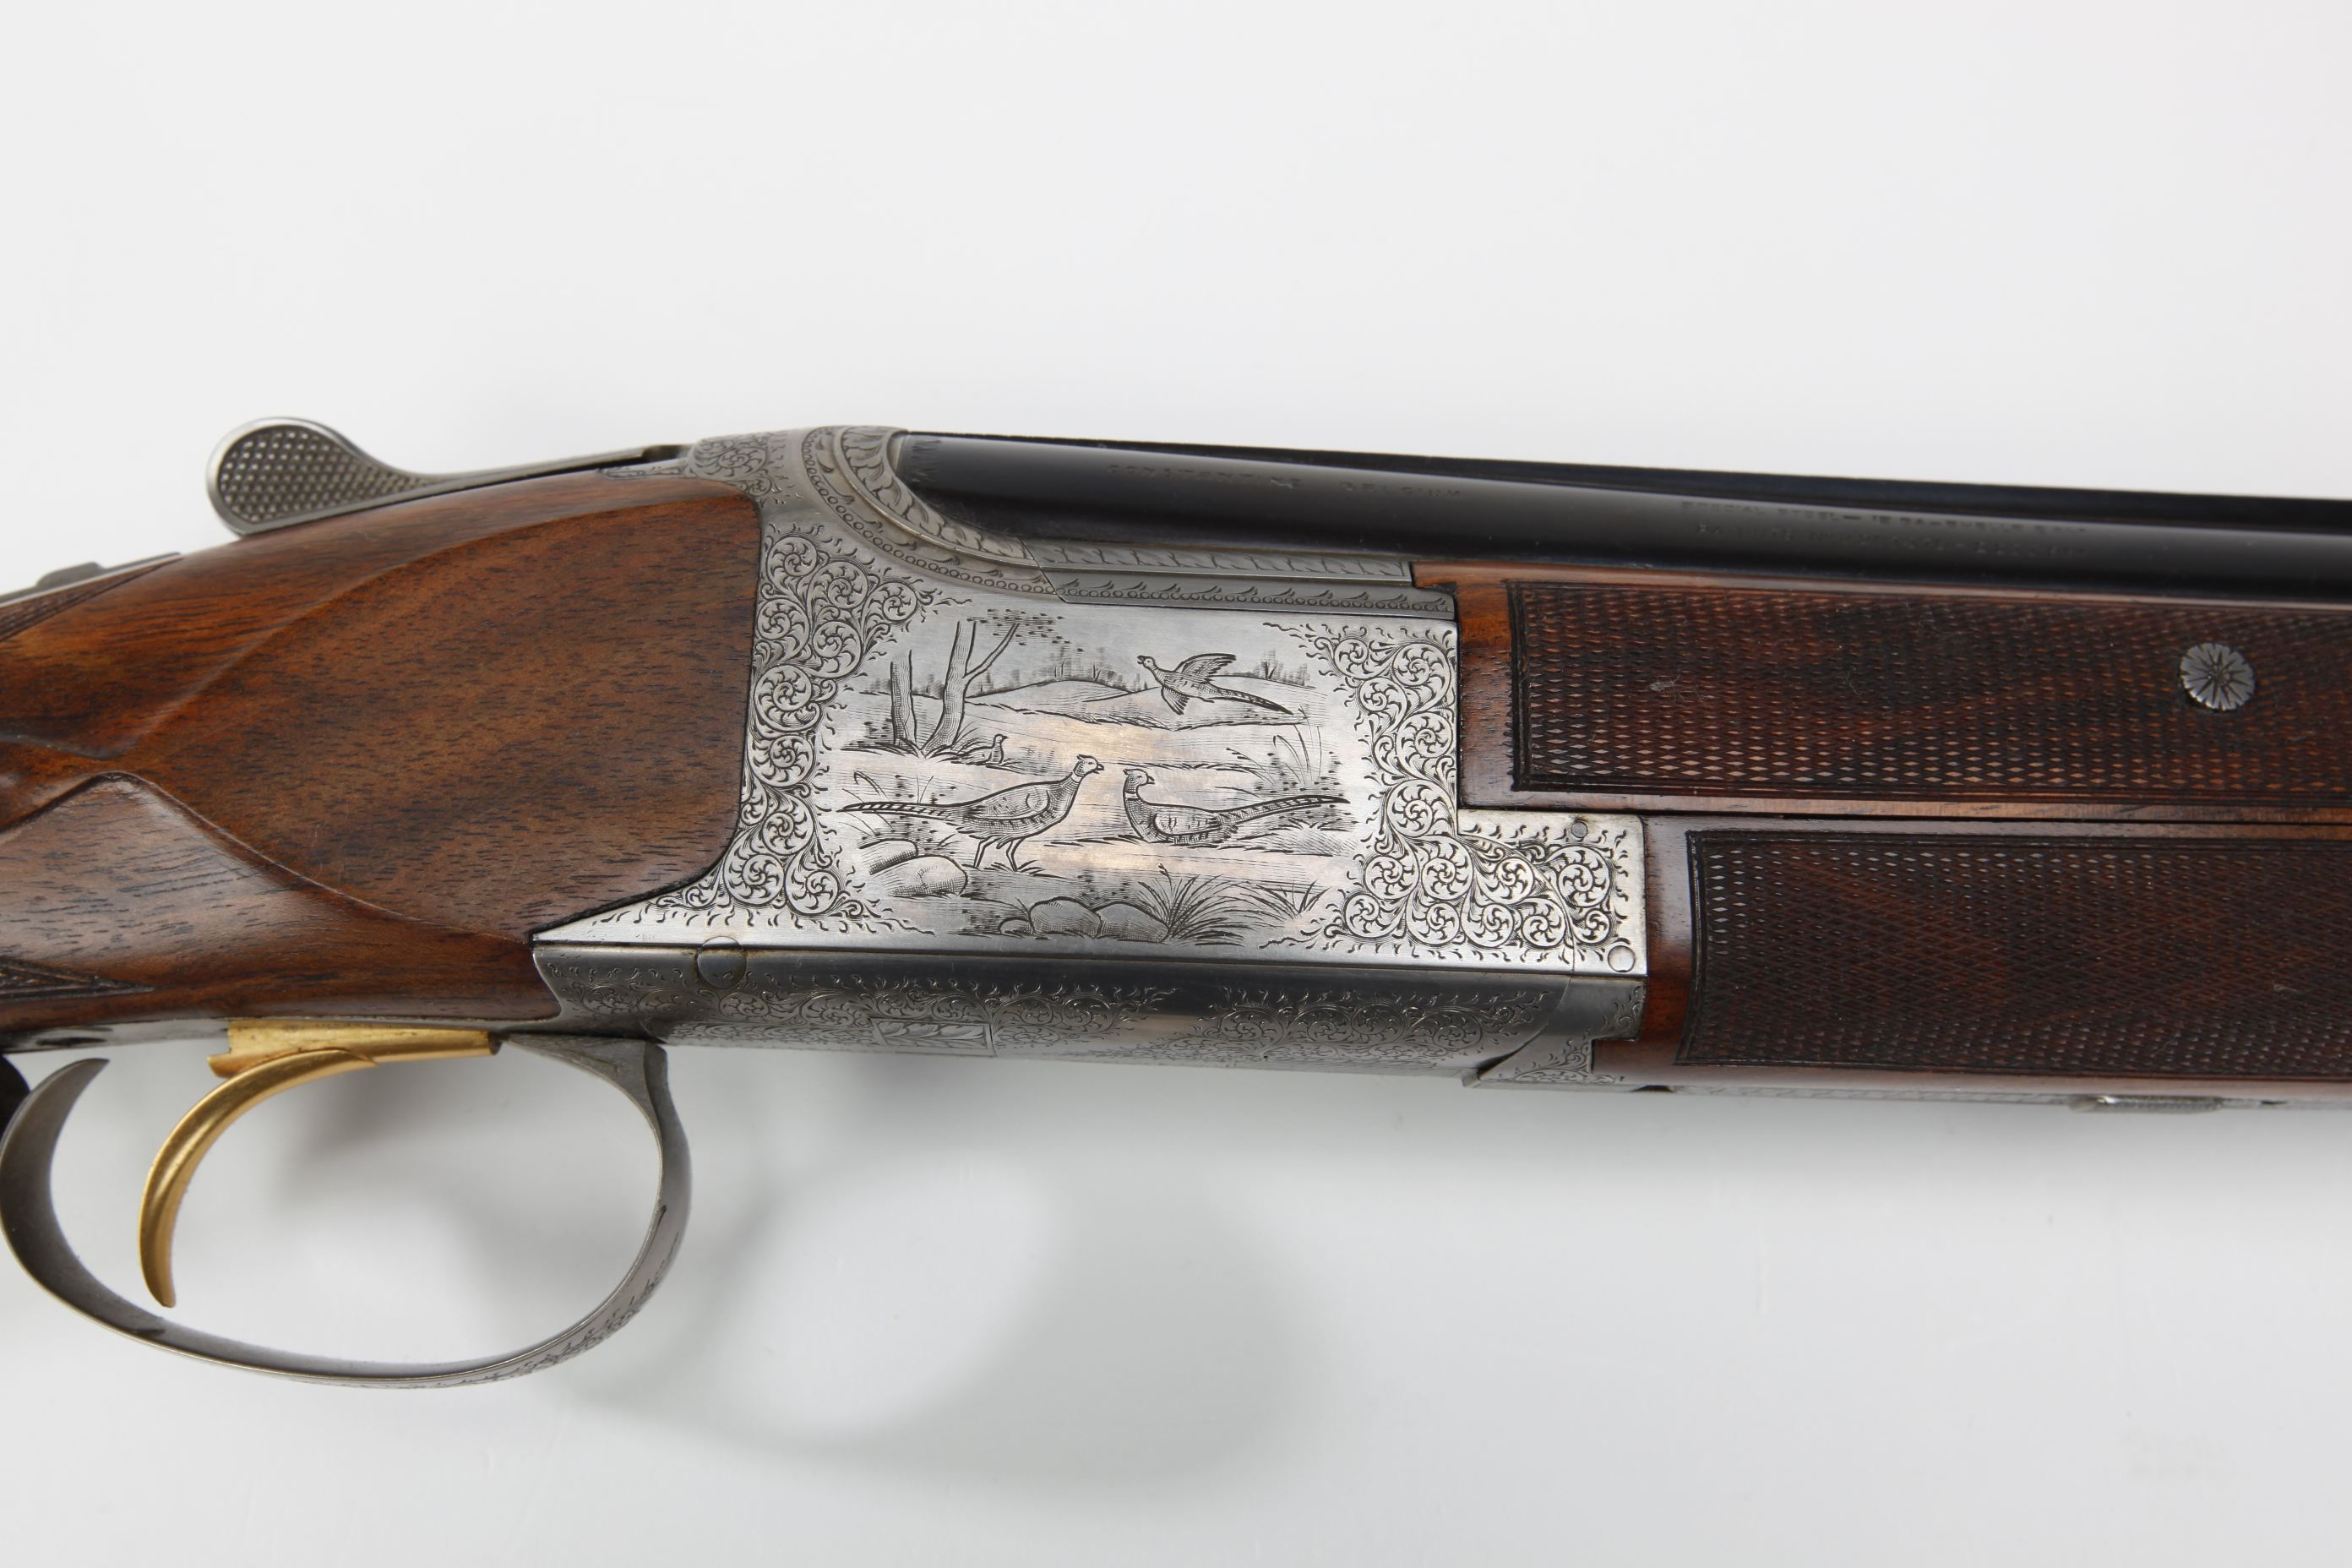 Fabrique Nationale (Liege, Belgium) Browning Superposed Shotgun